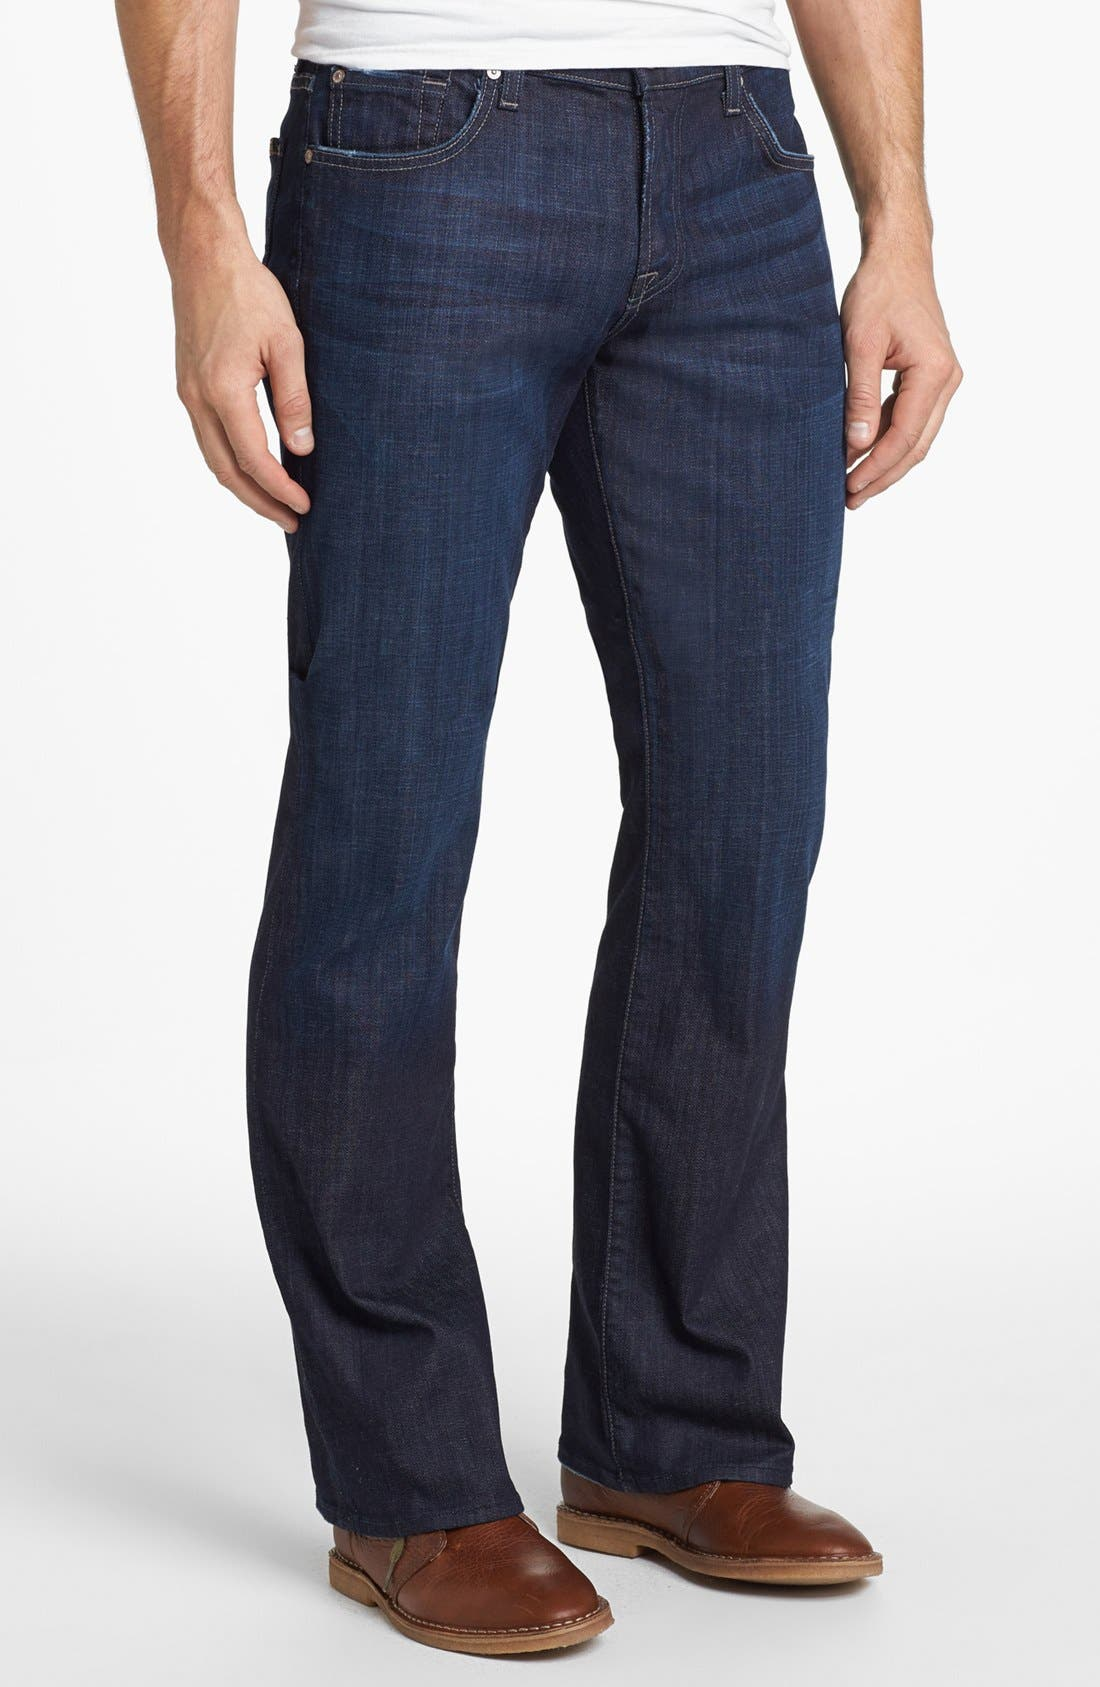 Alternate Image 1 Selected - 7 For All Mankind® 'Brett' Relaxed Bootcut Jeans (Los Angeles)